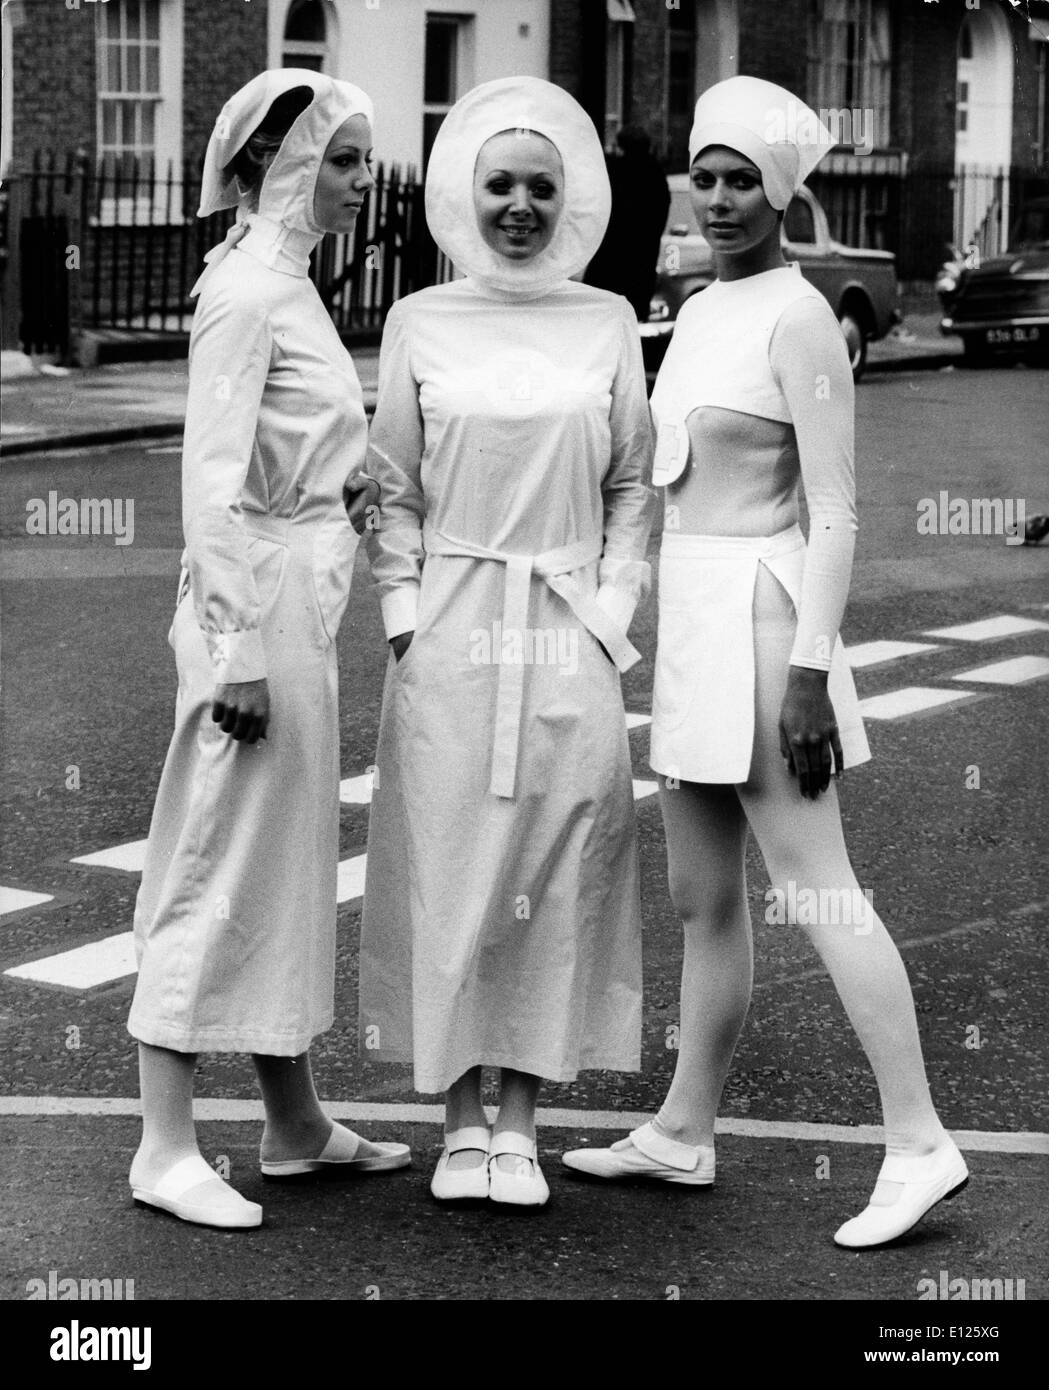 Mar 29, 2006; London, England, UK; (File Photo: Oct. 25, 1970) Models show revolutionary design for new uniforms for nurses by PIERRE CARDIN at the press preview of the London Nursing Exhibition. Cardin designed these uniforms with a new use of colors and design to maximize movement, freedom, and hygiene. (Credit Image: KEYSTONE Pictures USA/ZUMAPRESS.com) - Stock Image